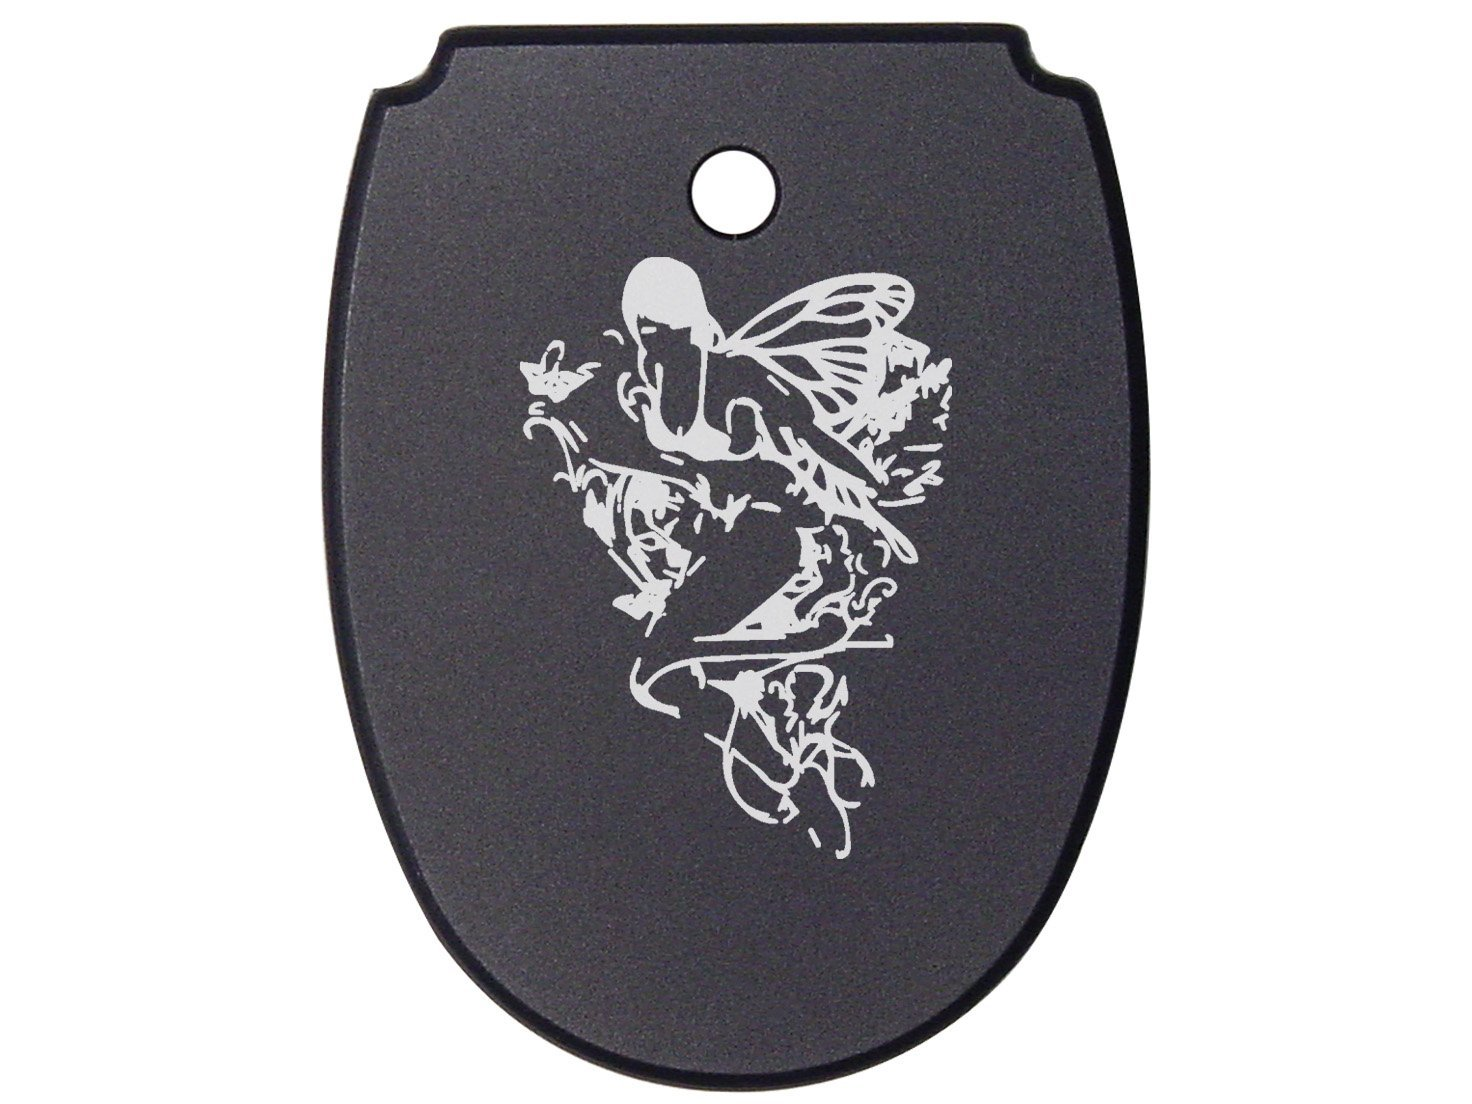 NDZ Performance For SIG SAUER P320 P250 Mag Plate Black .45 Only Fairy Lady